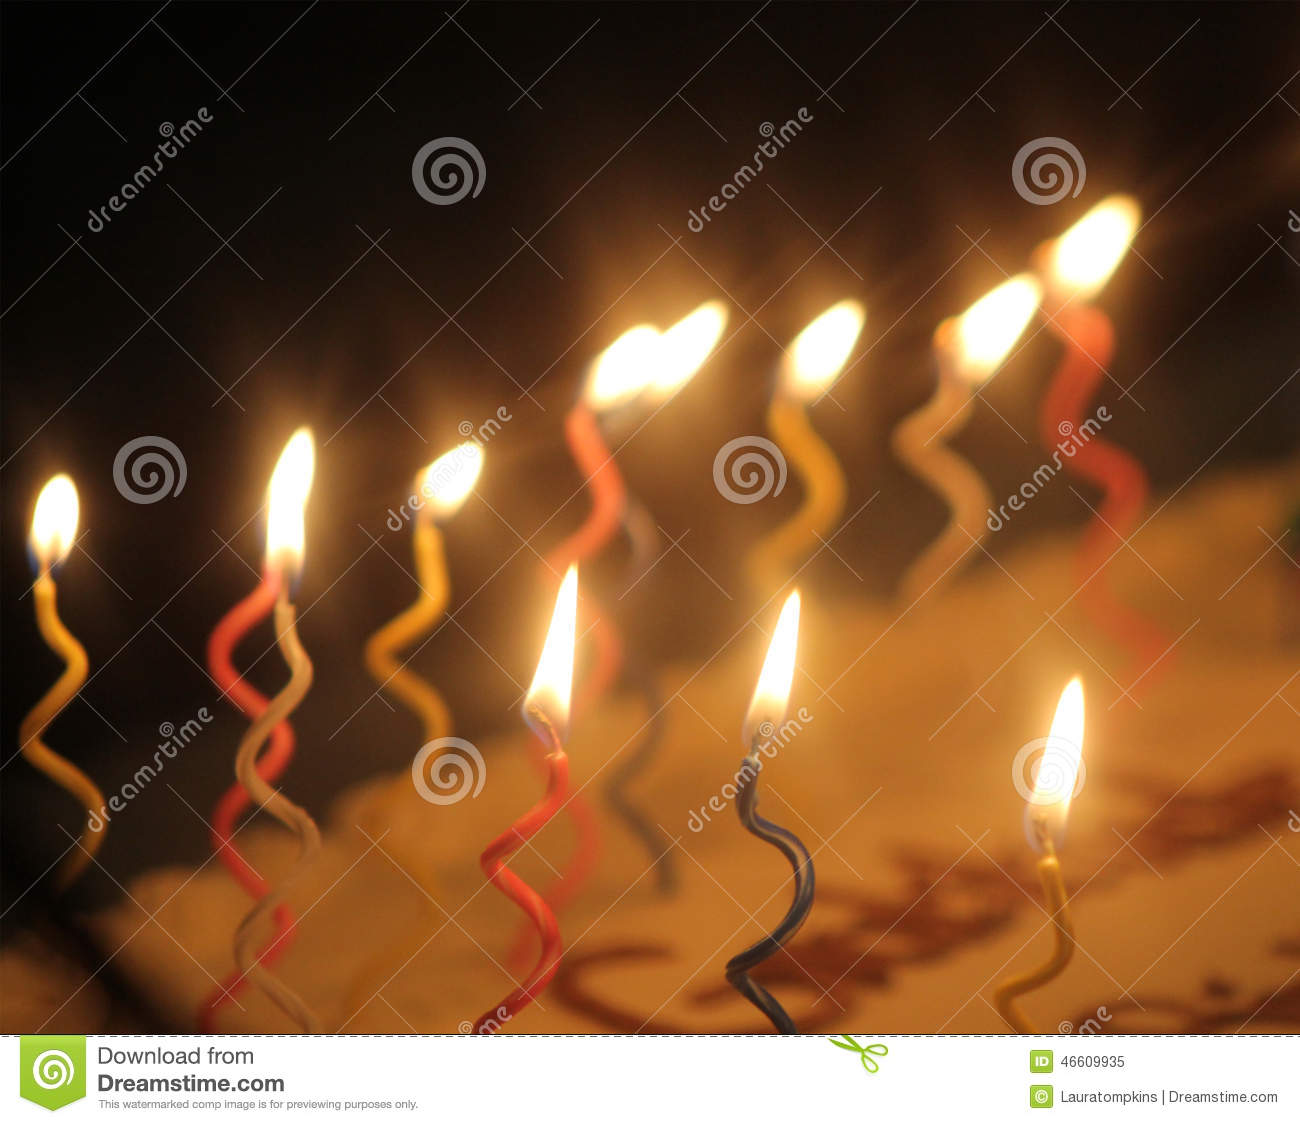 Blurry Colorful Wavy Lit Candles On A Cake